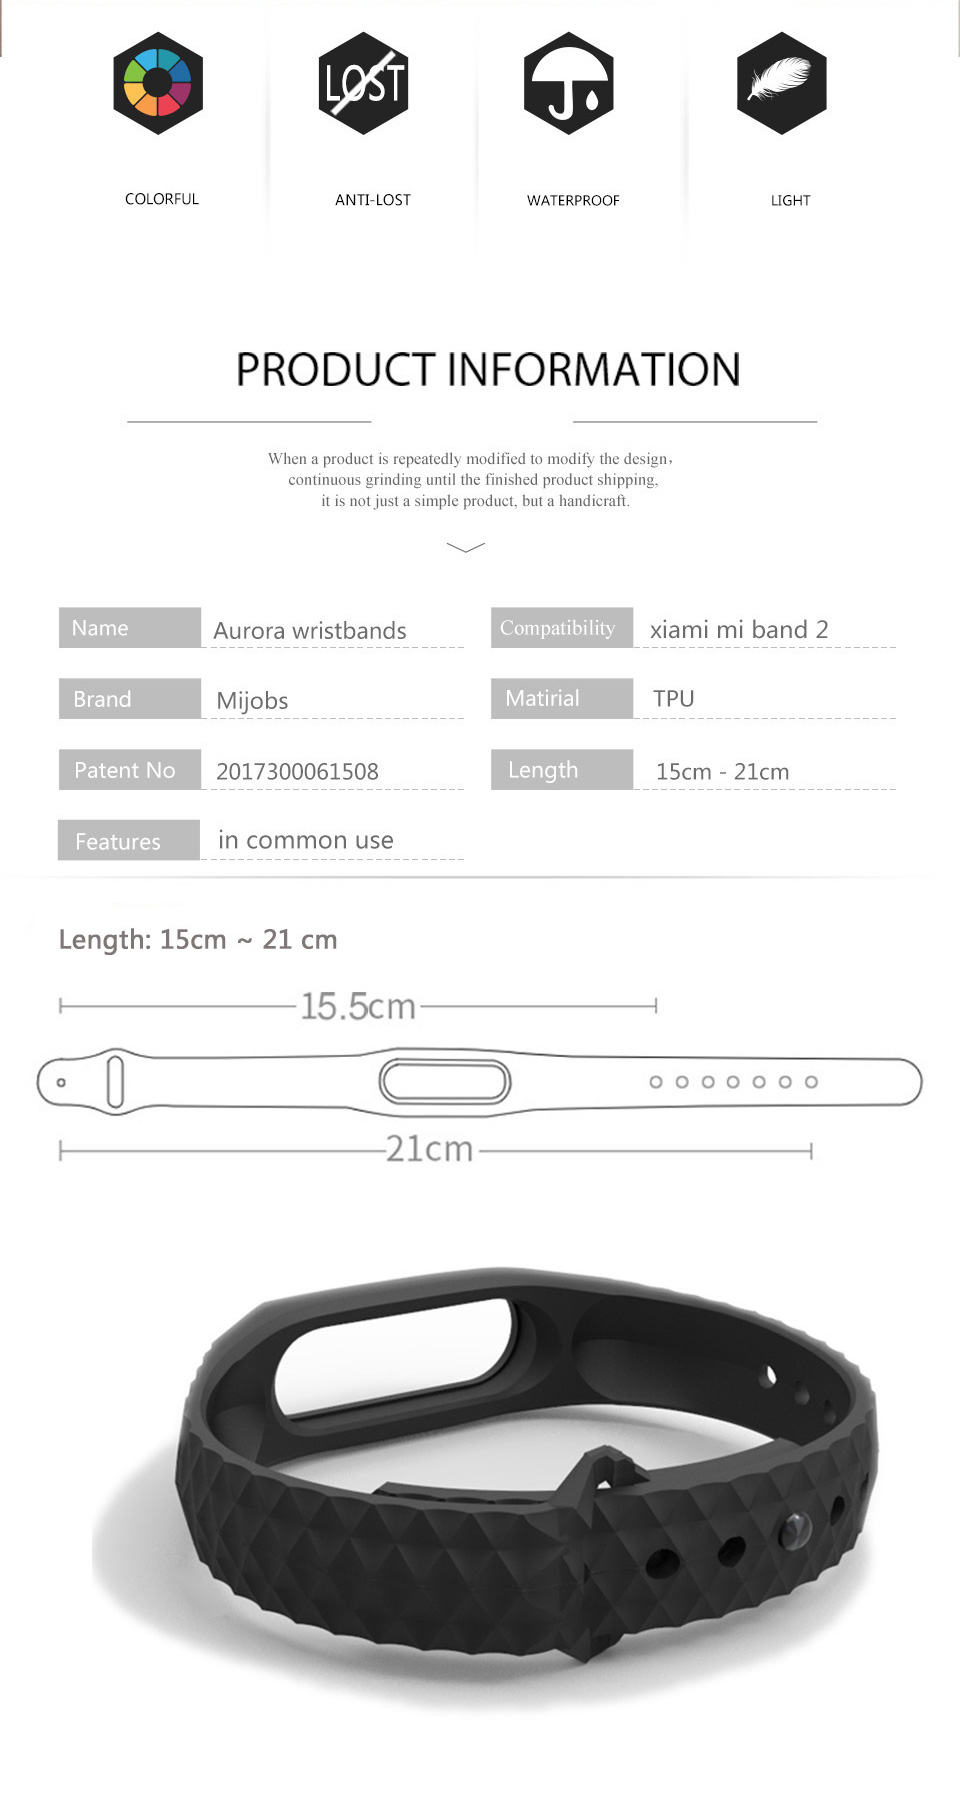 Mijobs Xiaomi Mi Band 2 Strap Silicone Strap Bracelet Replacement Wristband Smart Band Accessories Colorful wrist Strap 4